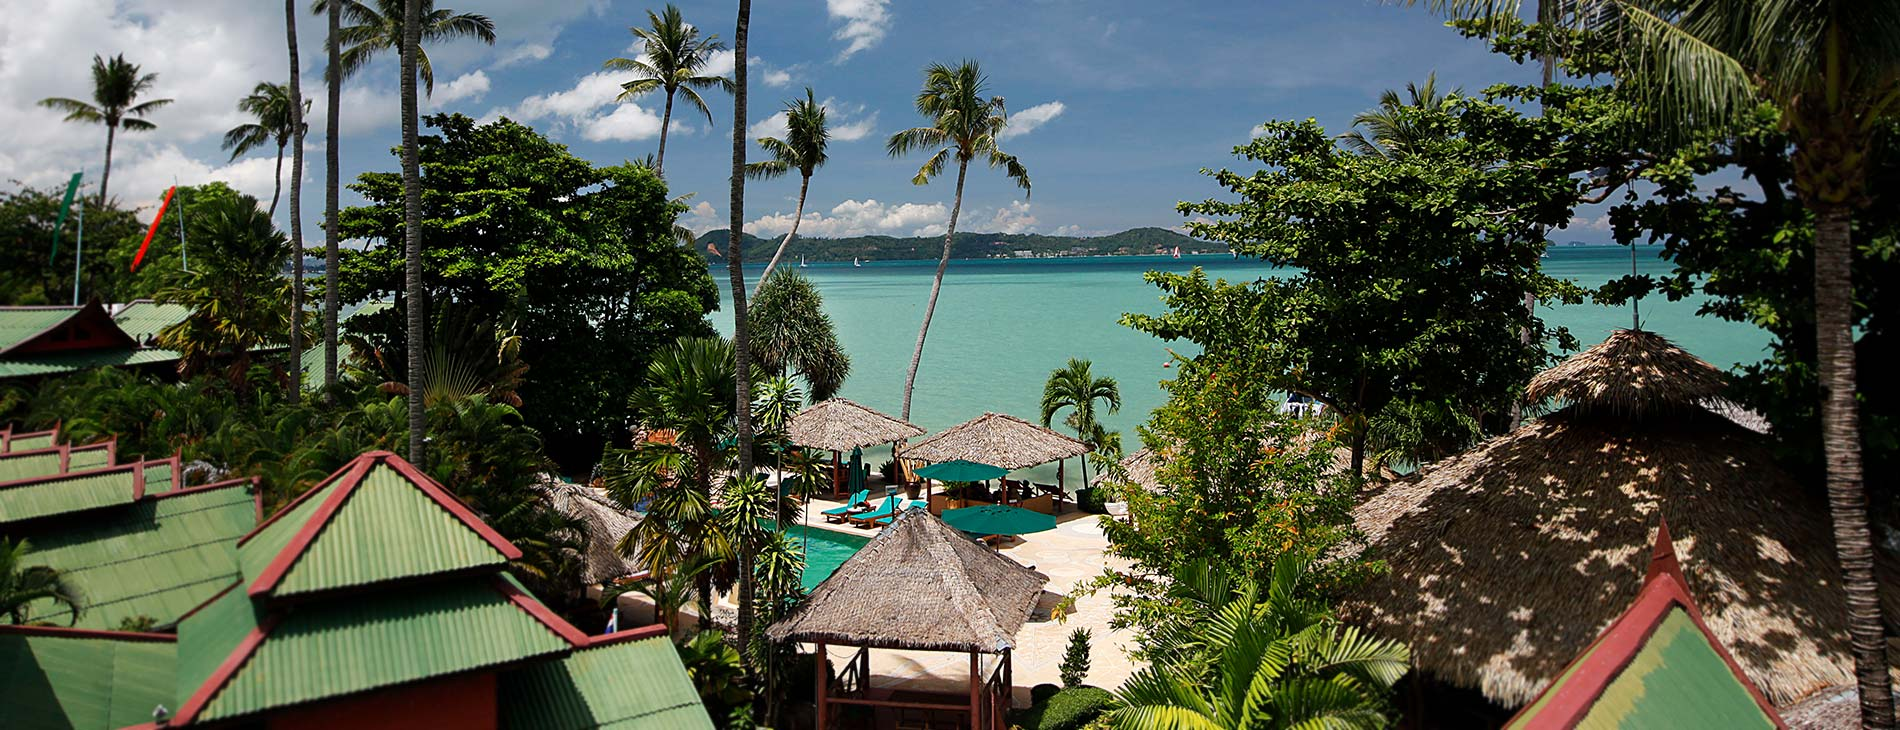 Wellbeing programs in Phuket Thailand